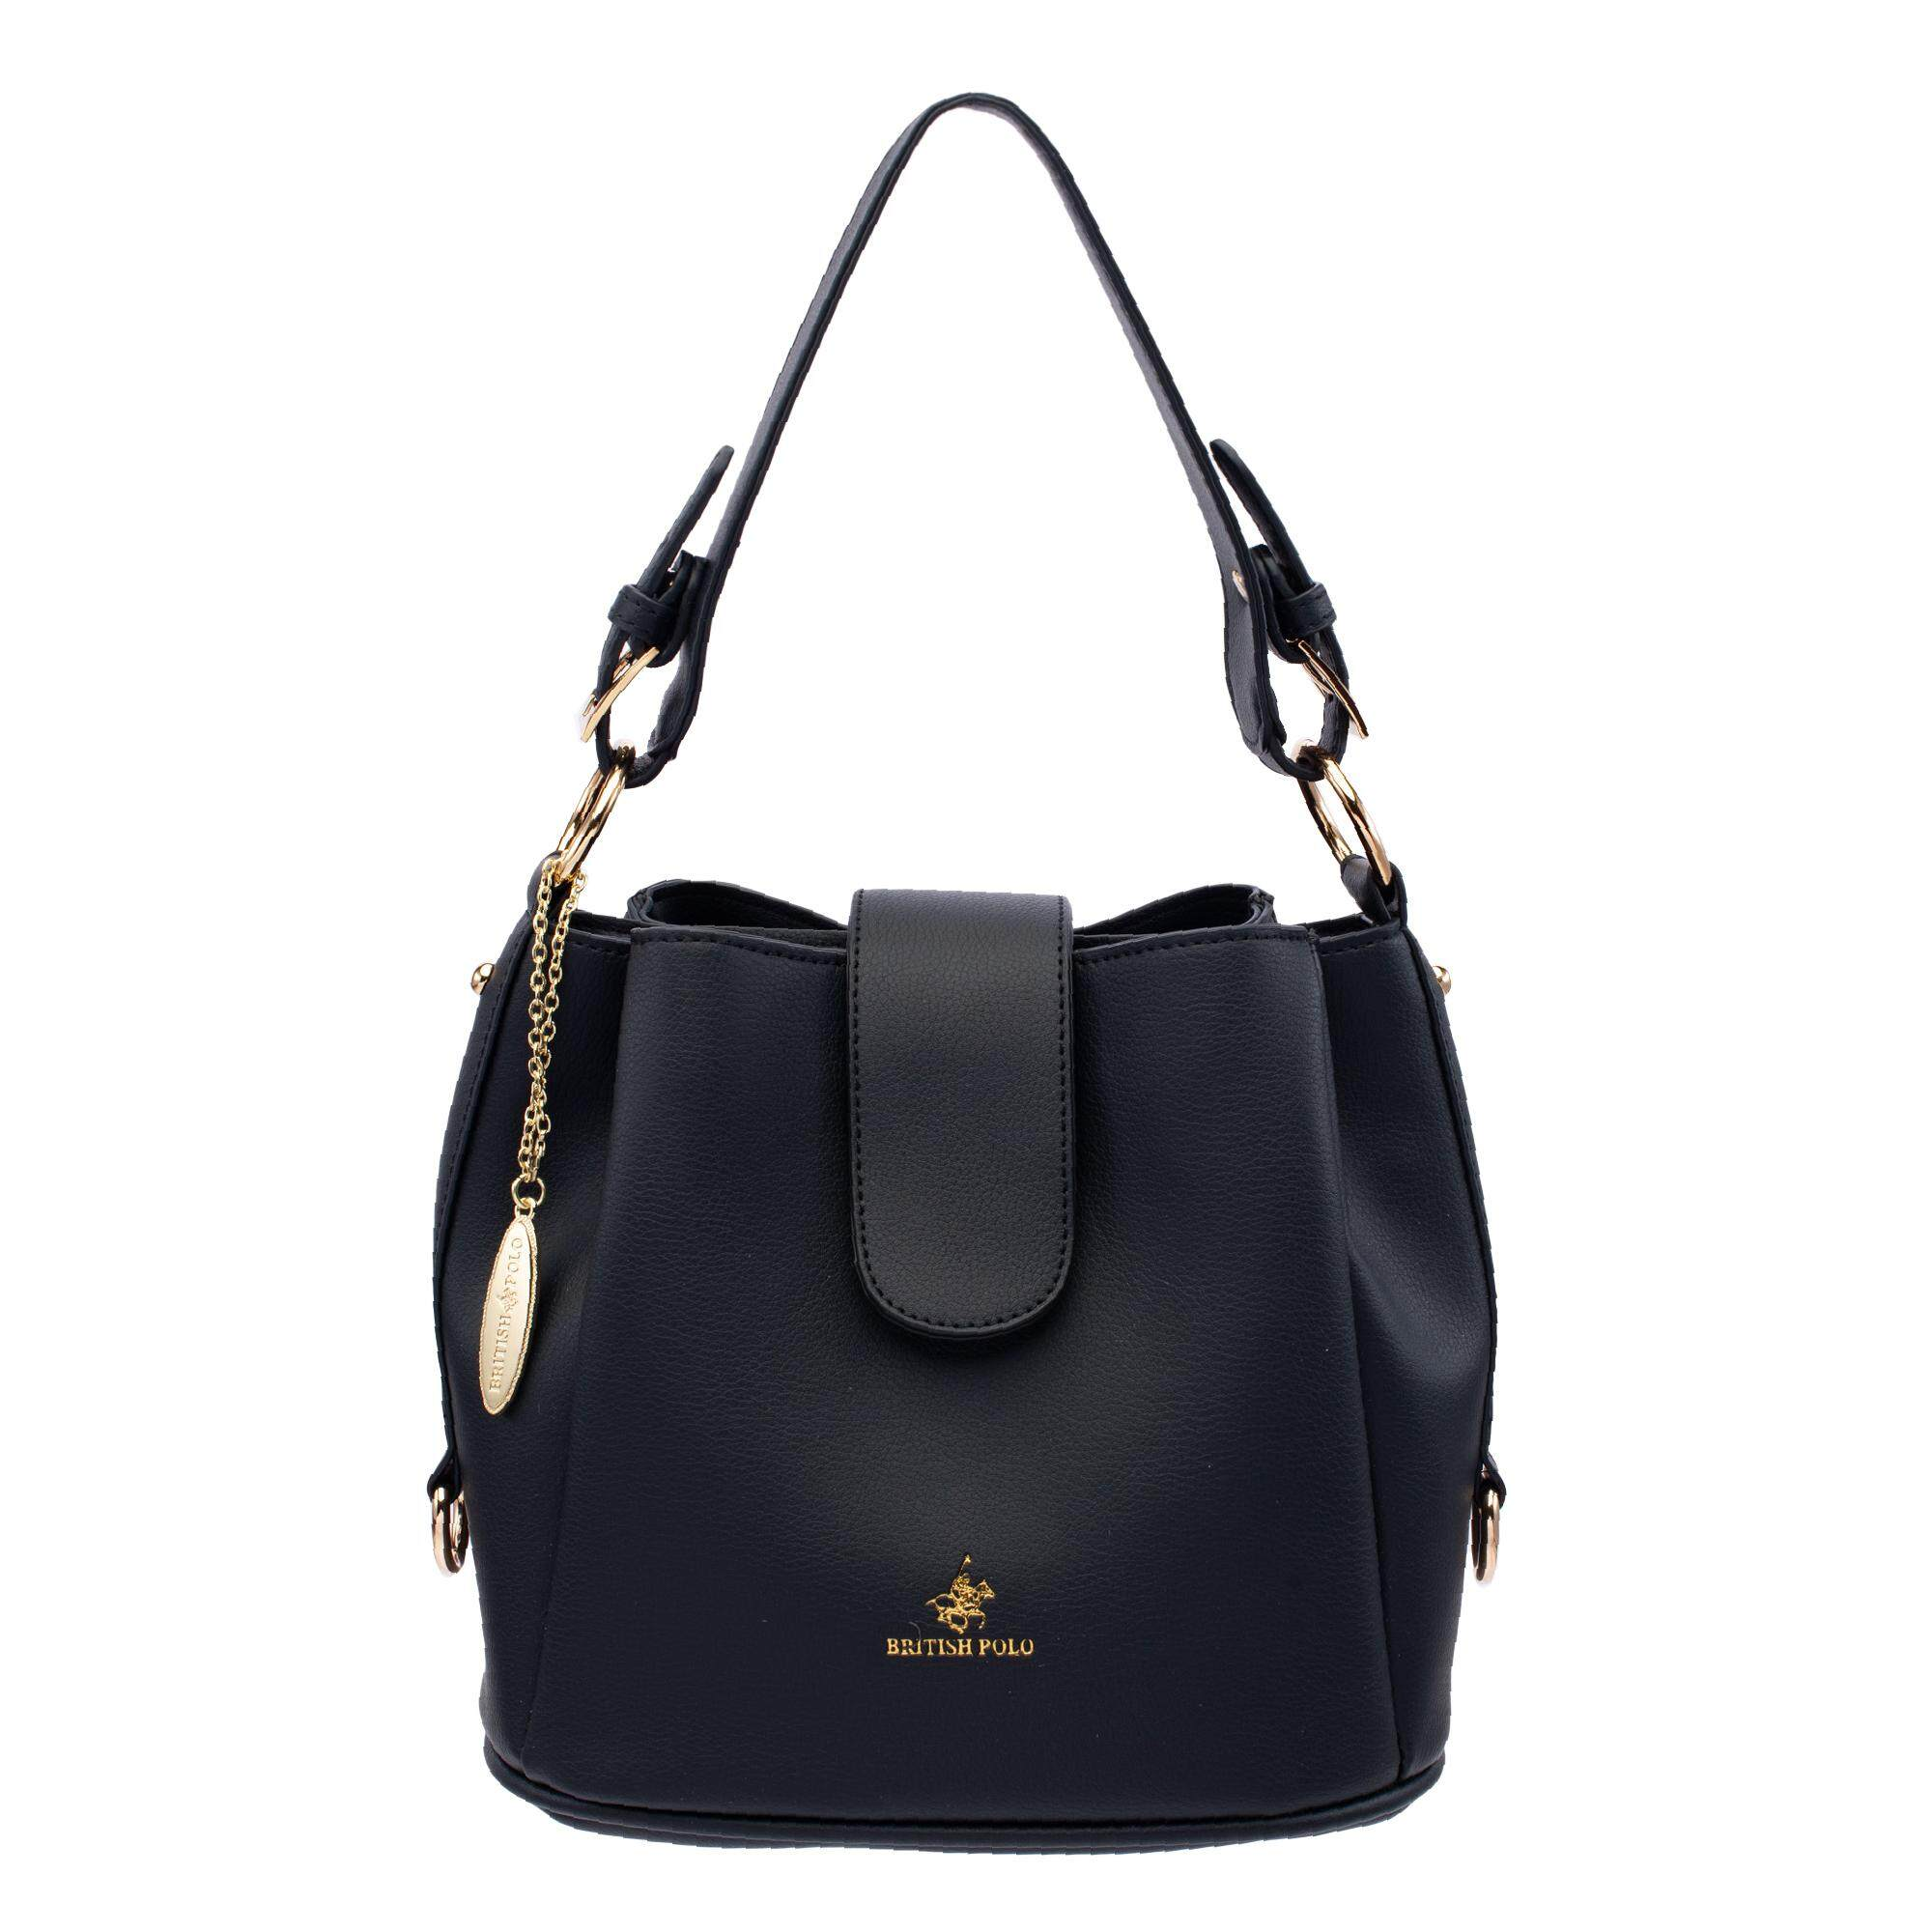 British Polo Women Bags price in Malaysia - Best British Polo Women ... fe4837cc5836a